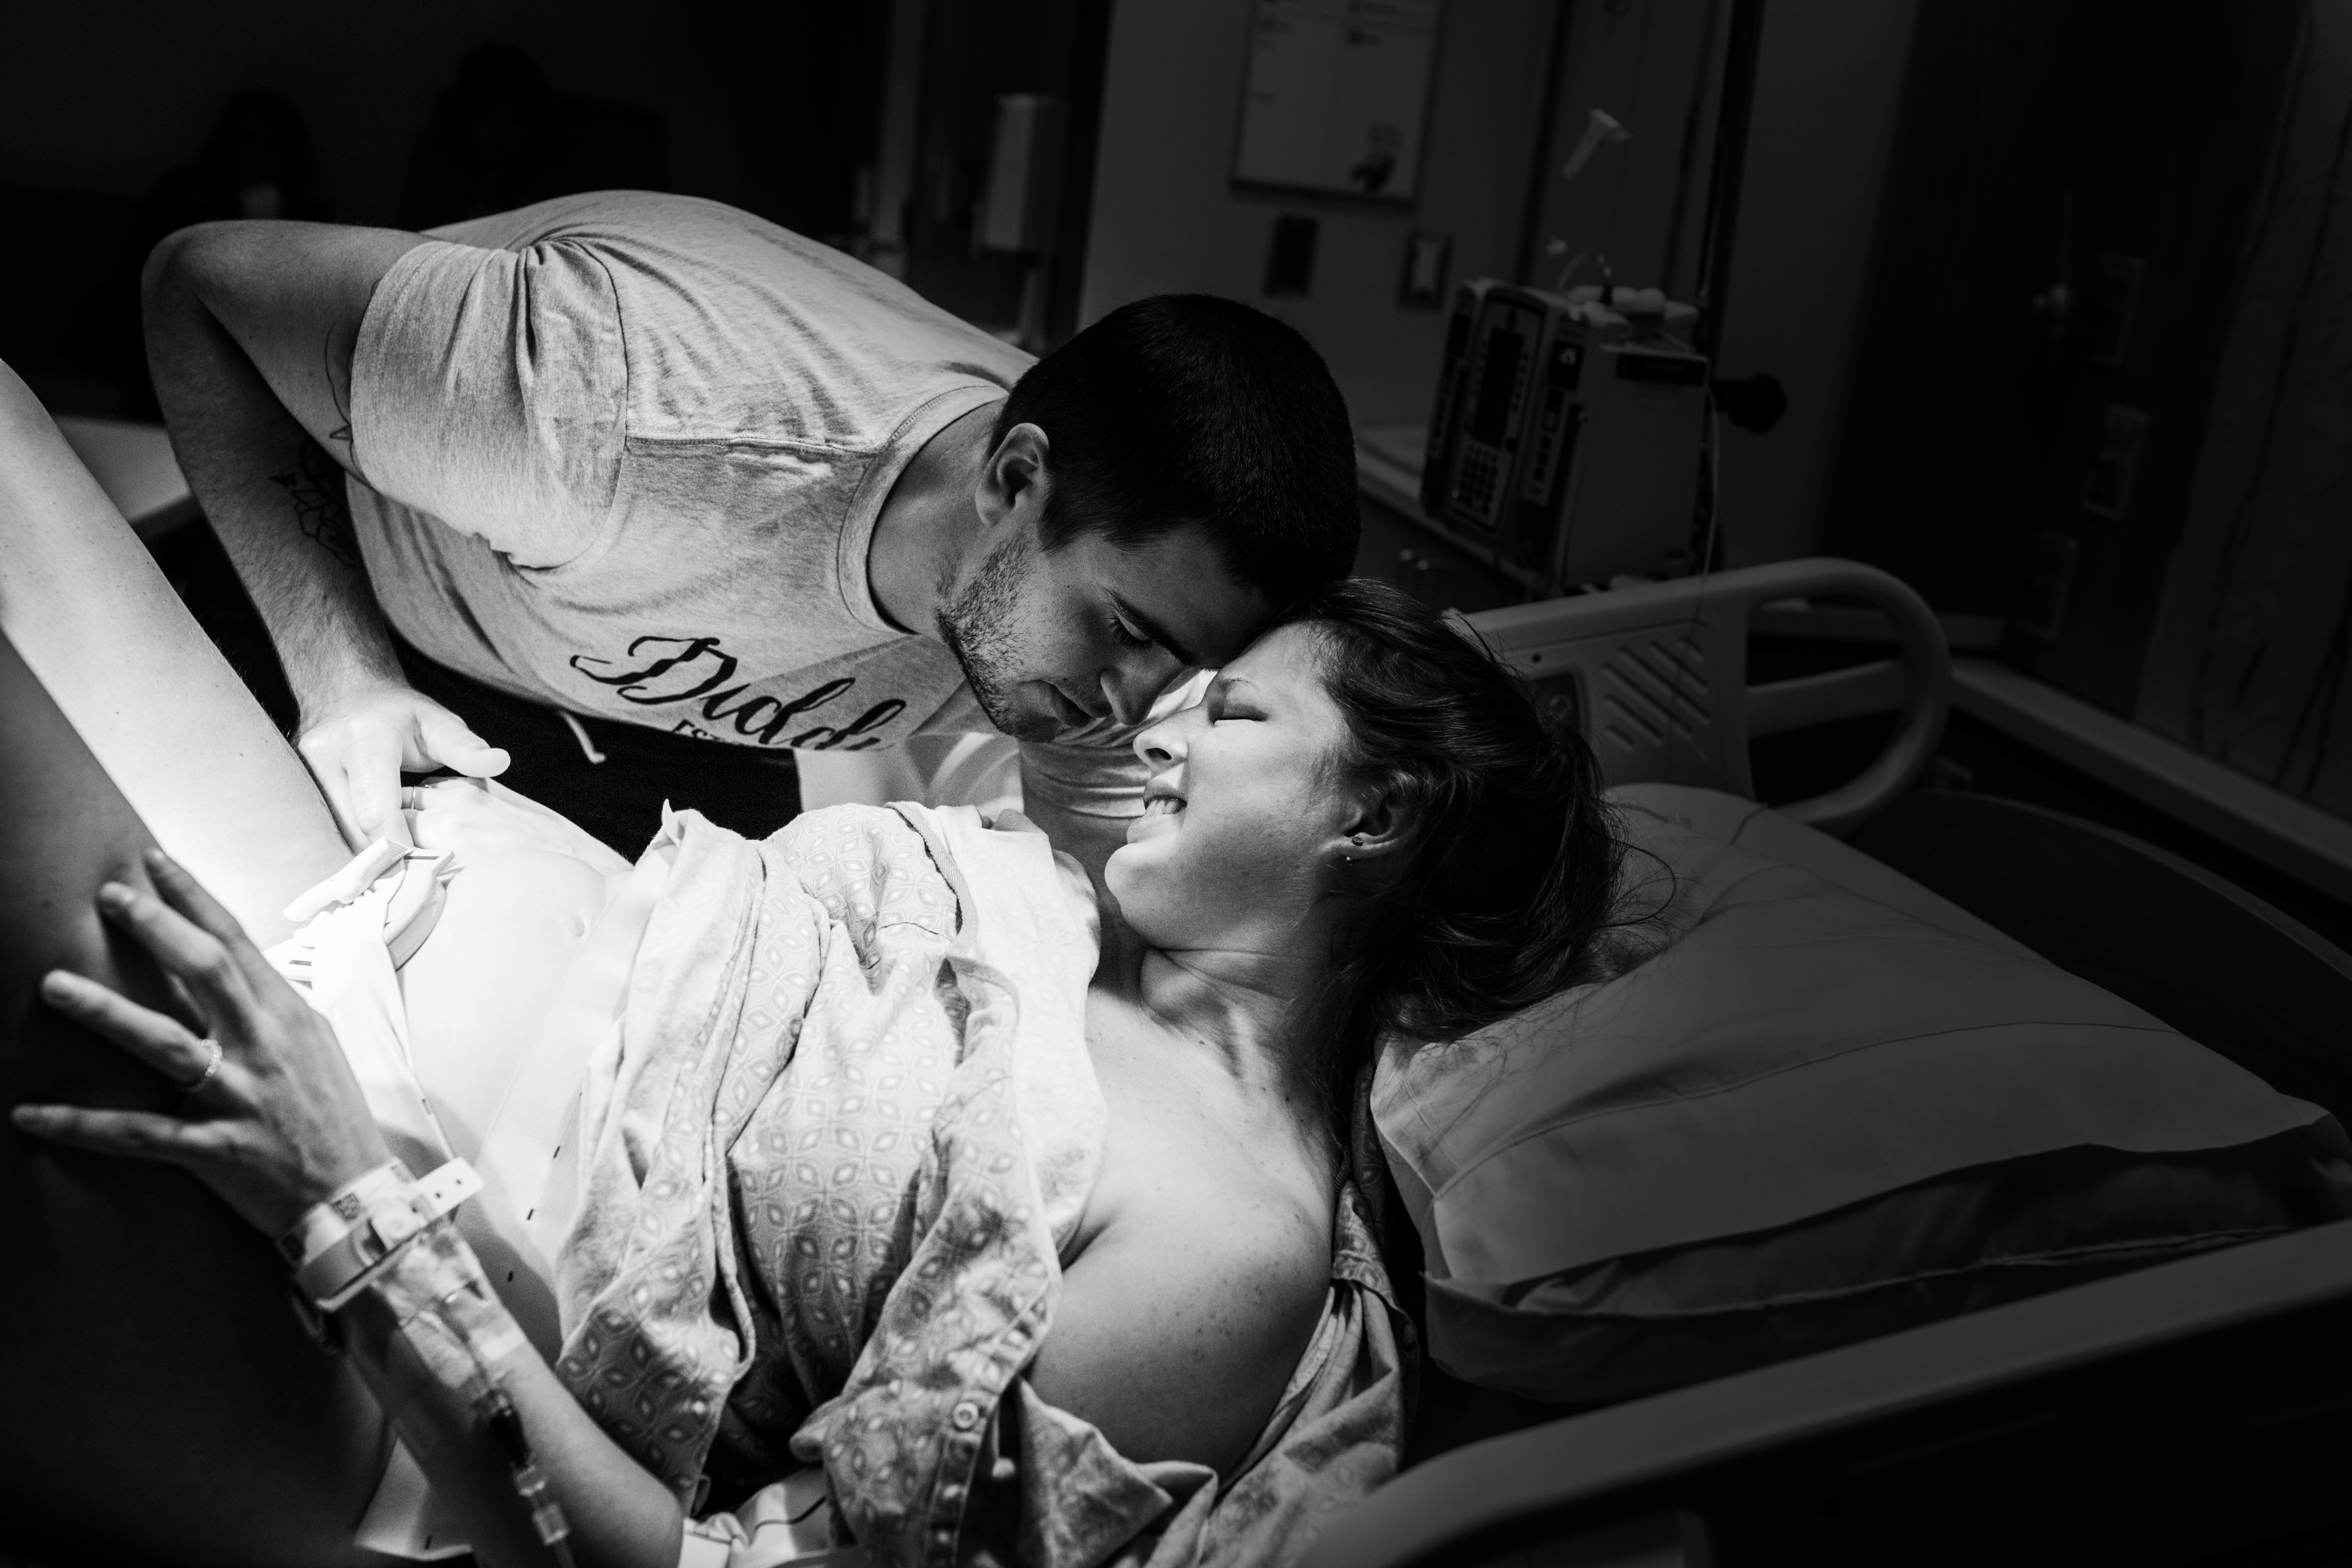 So in love and working together to bring their baby into the world.